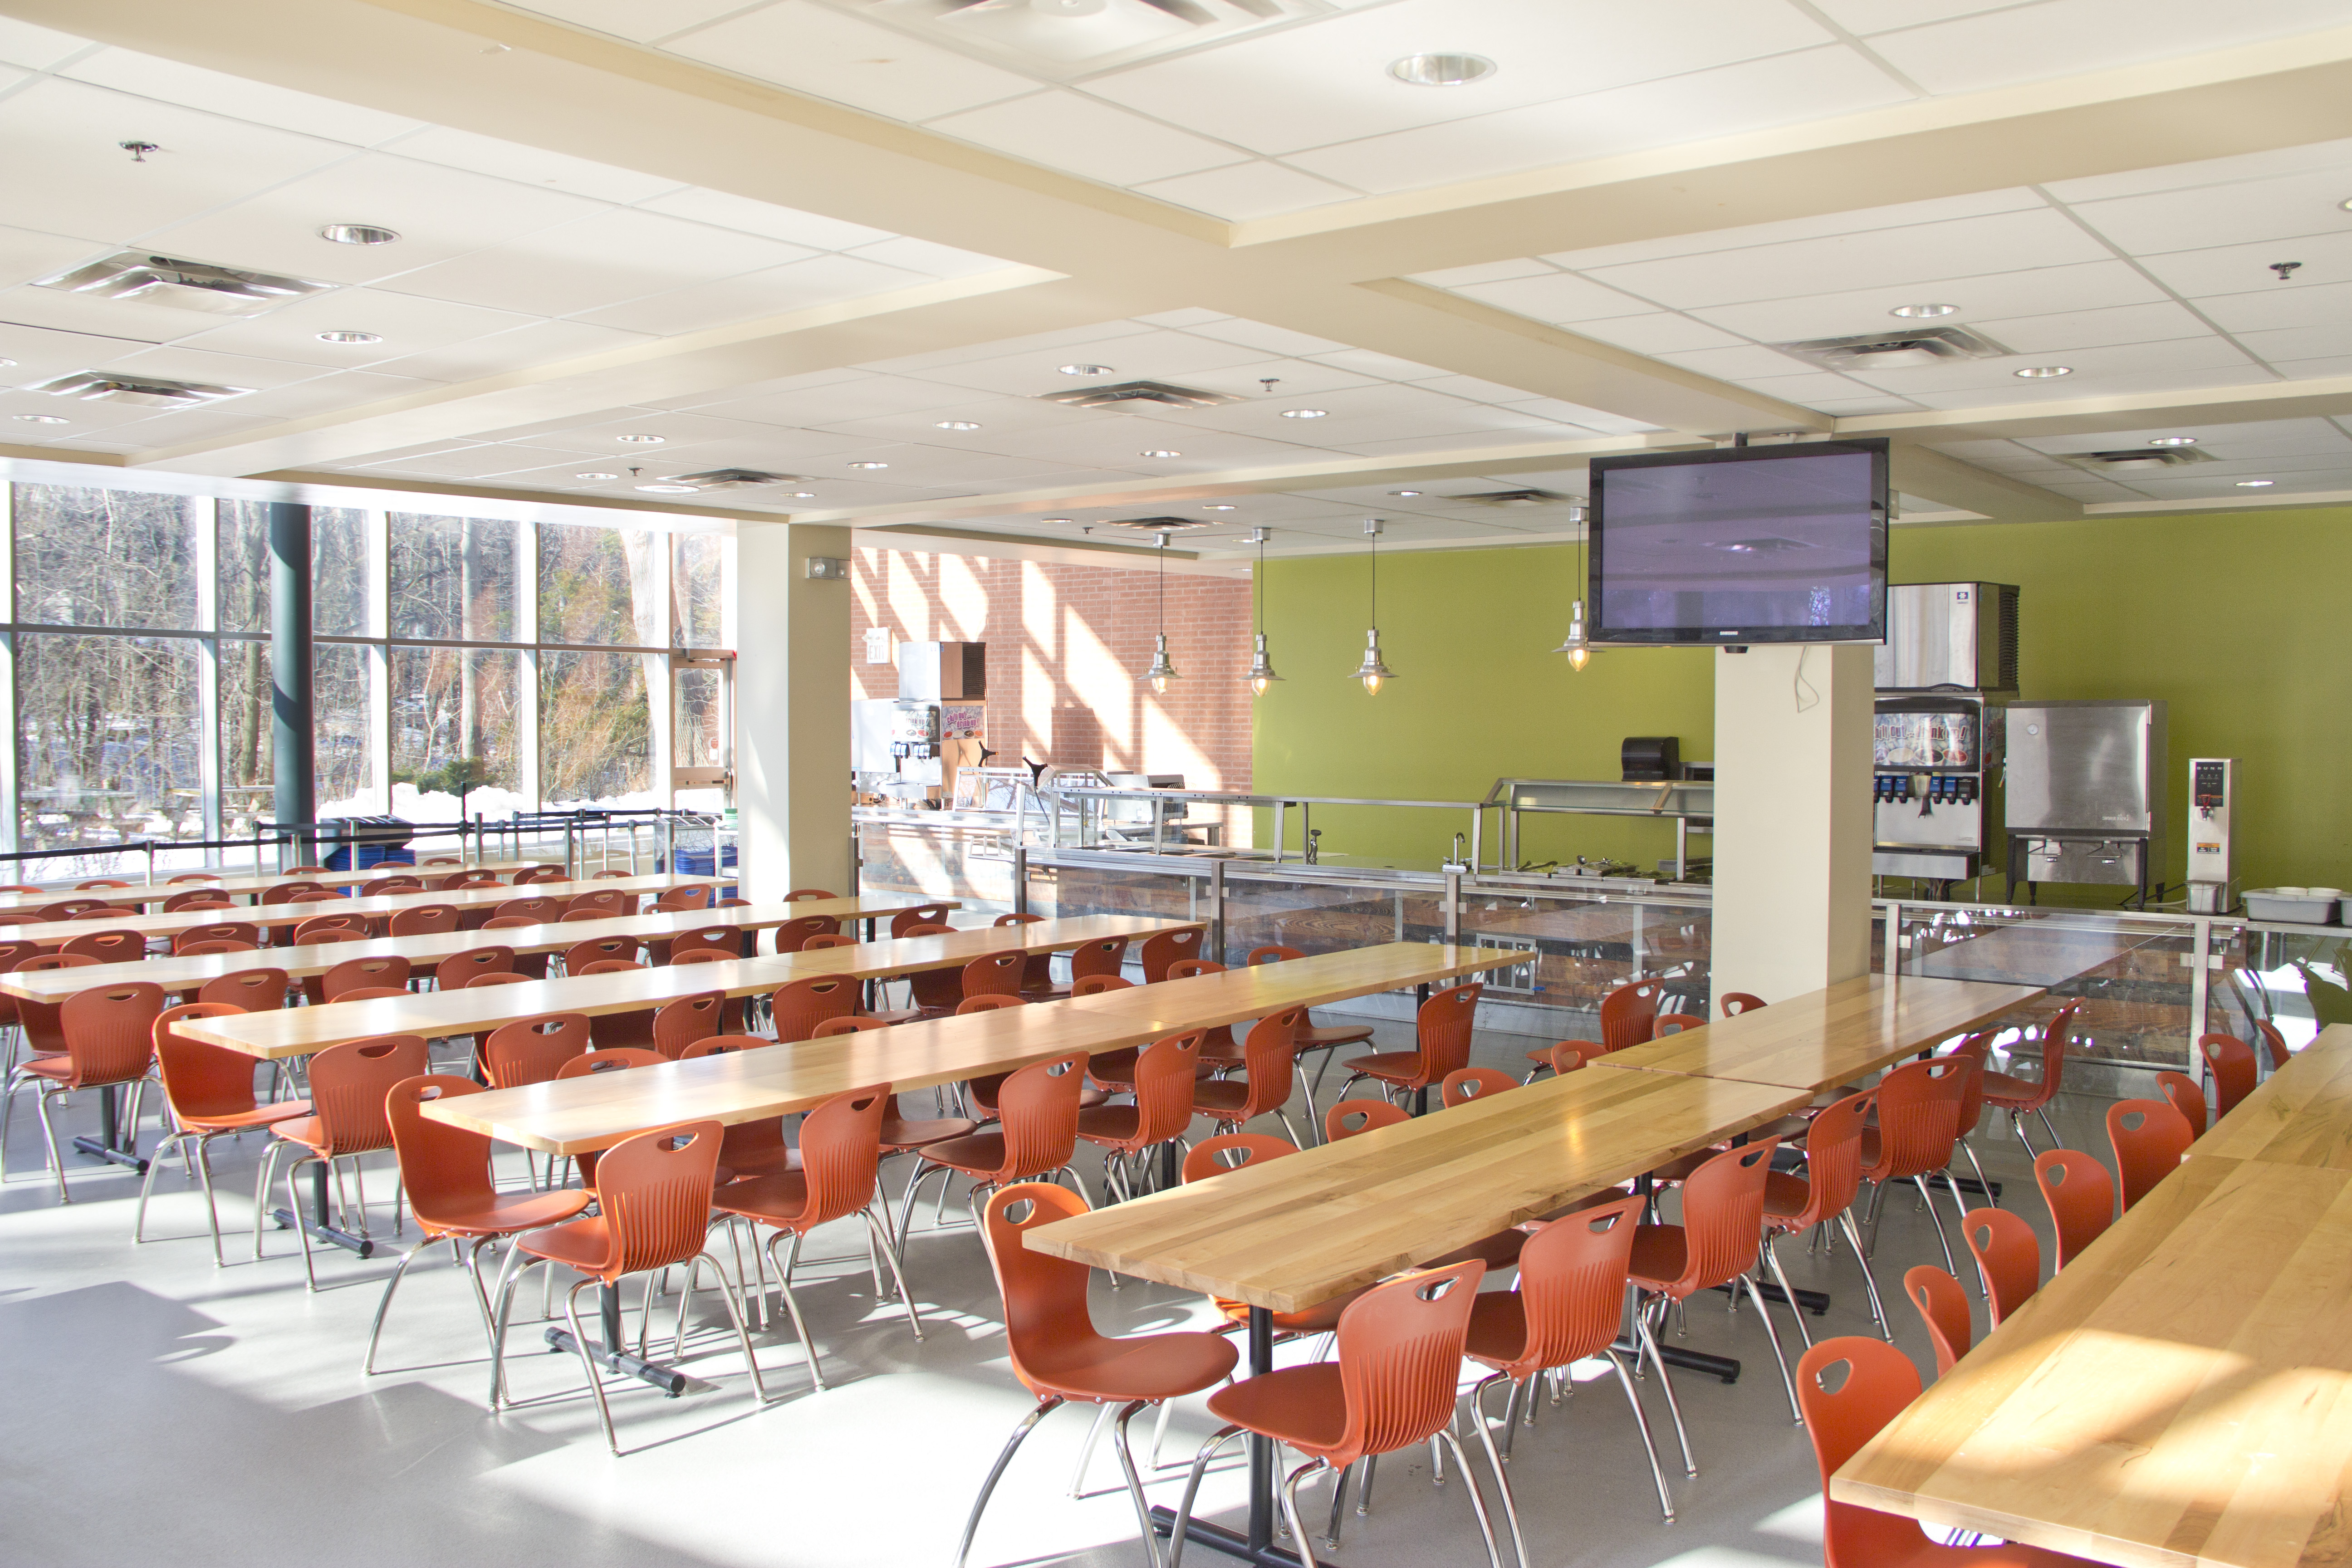 Cafeteria tables and service station